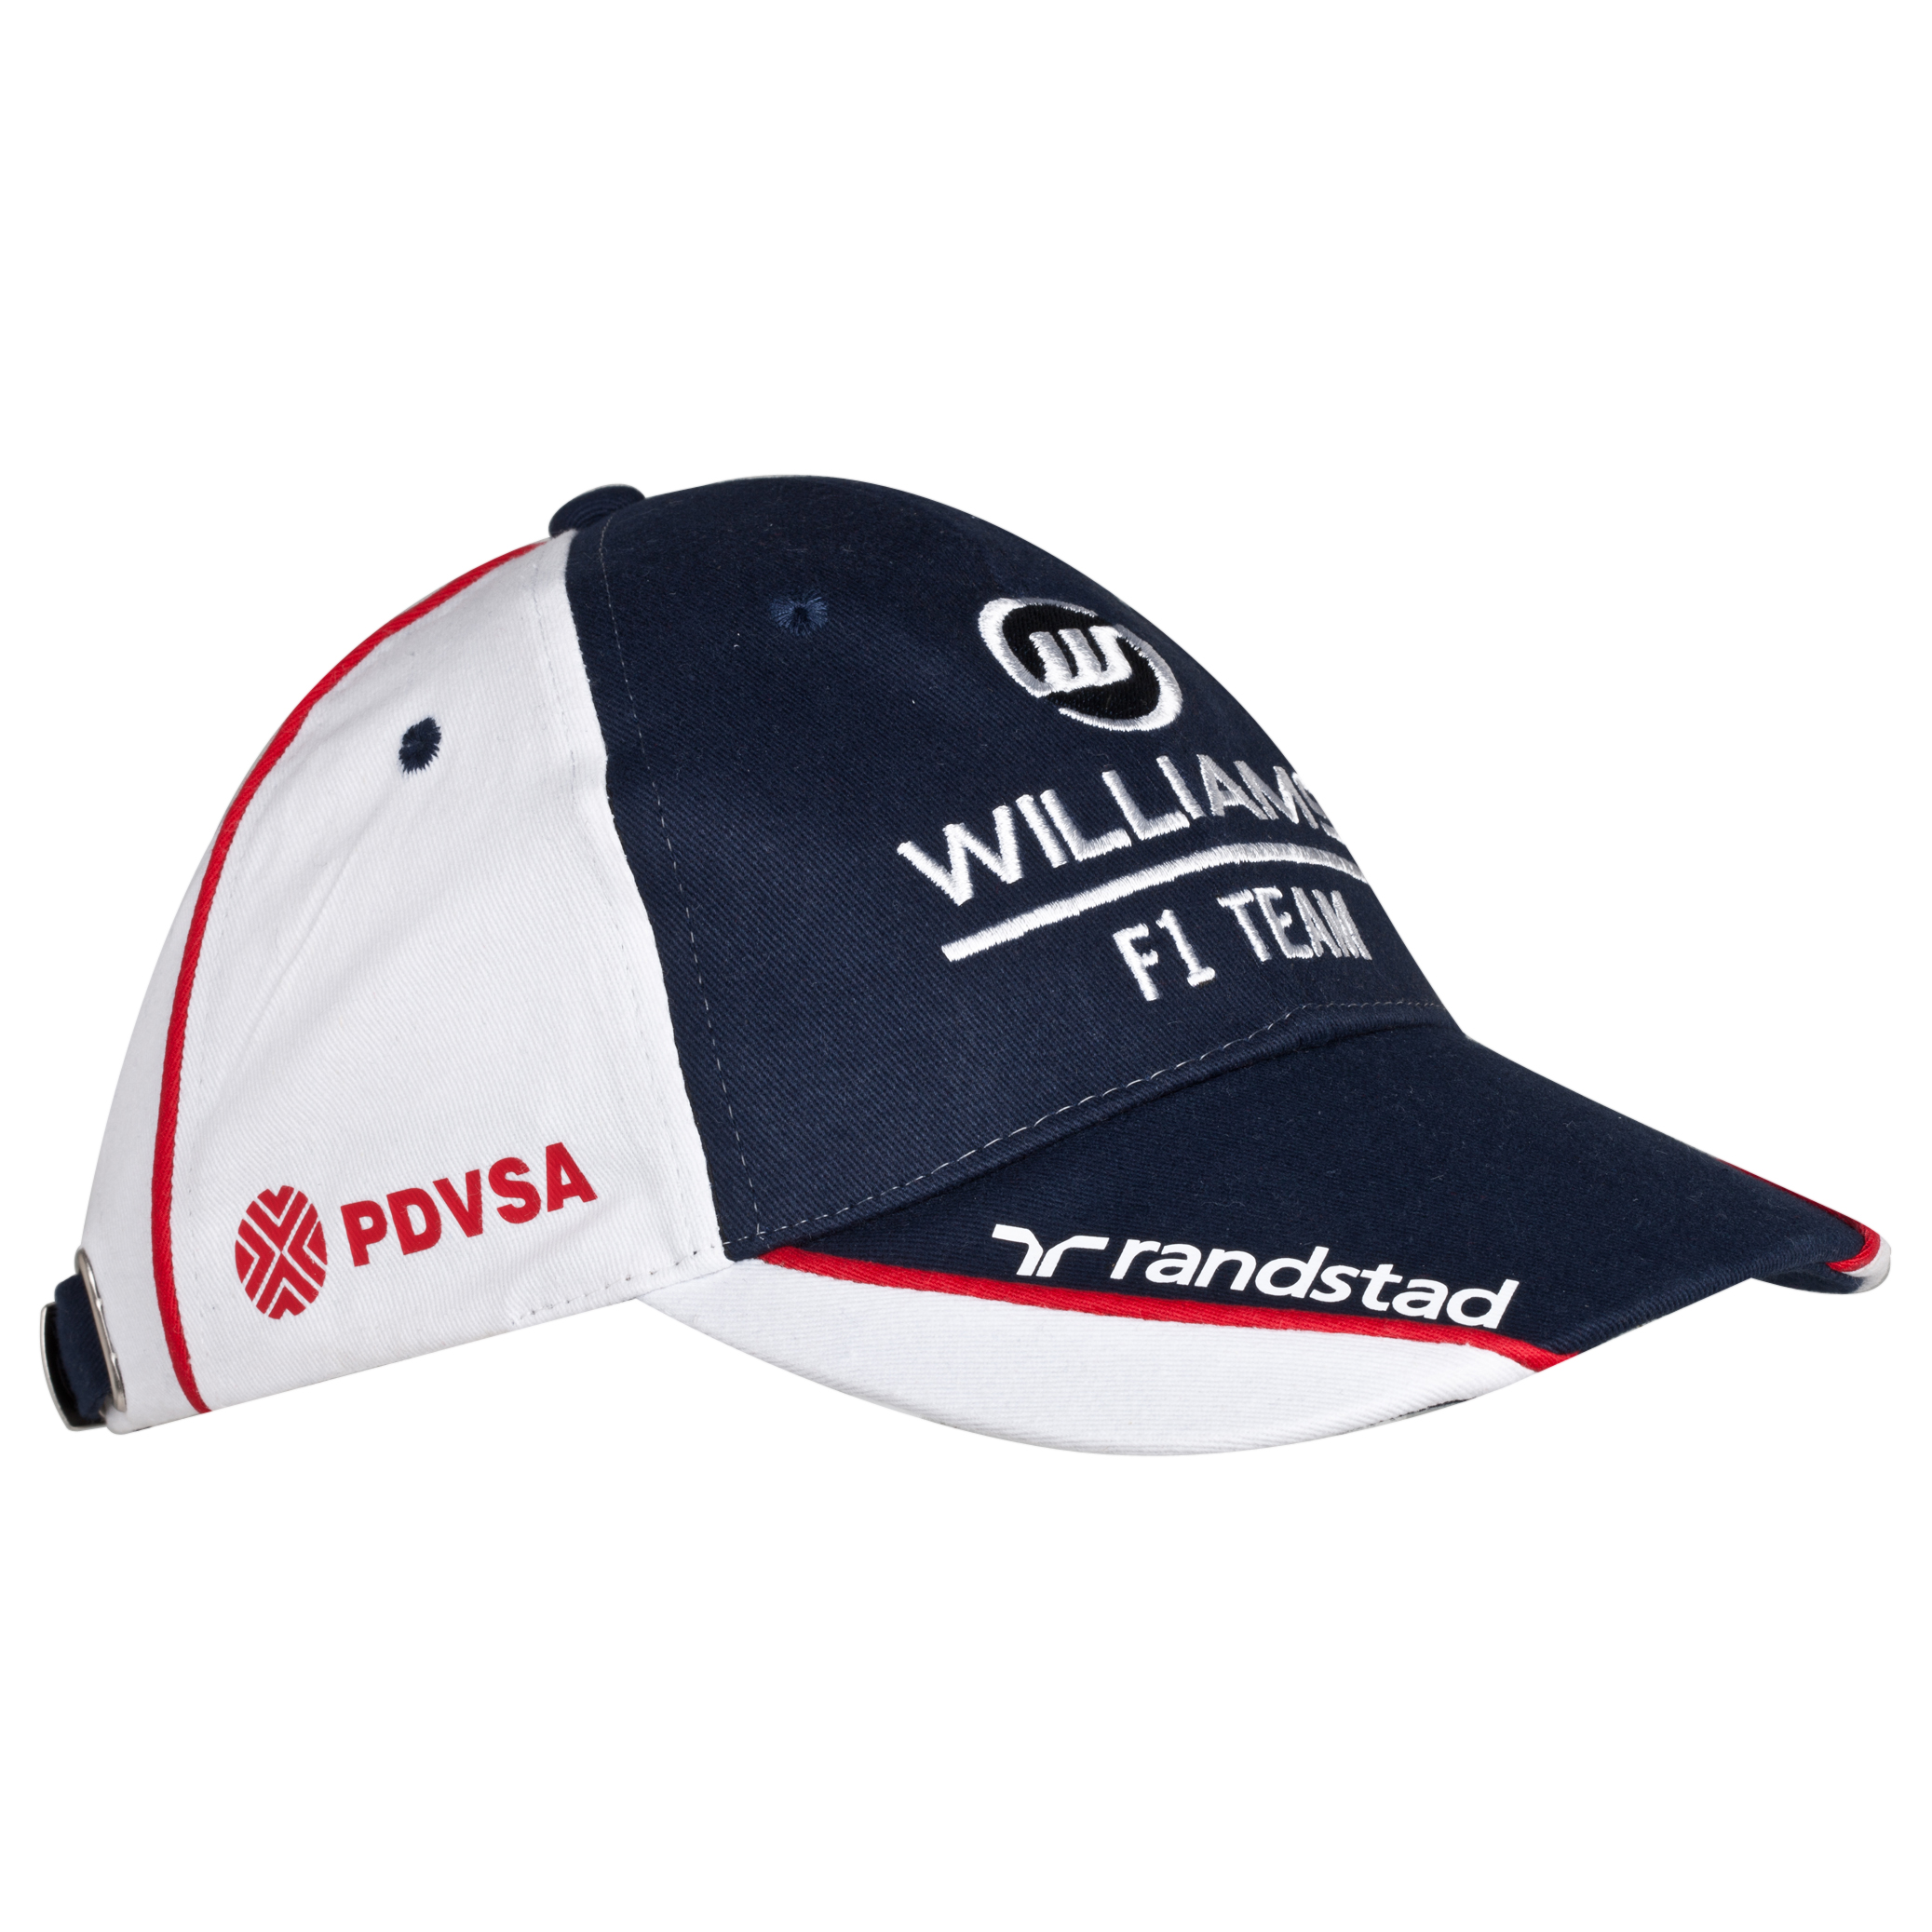 WILLIAMS F1 Team 2013 Pastor Drivers Cap